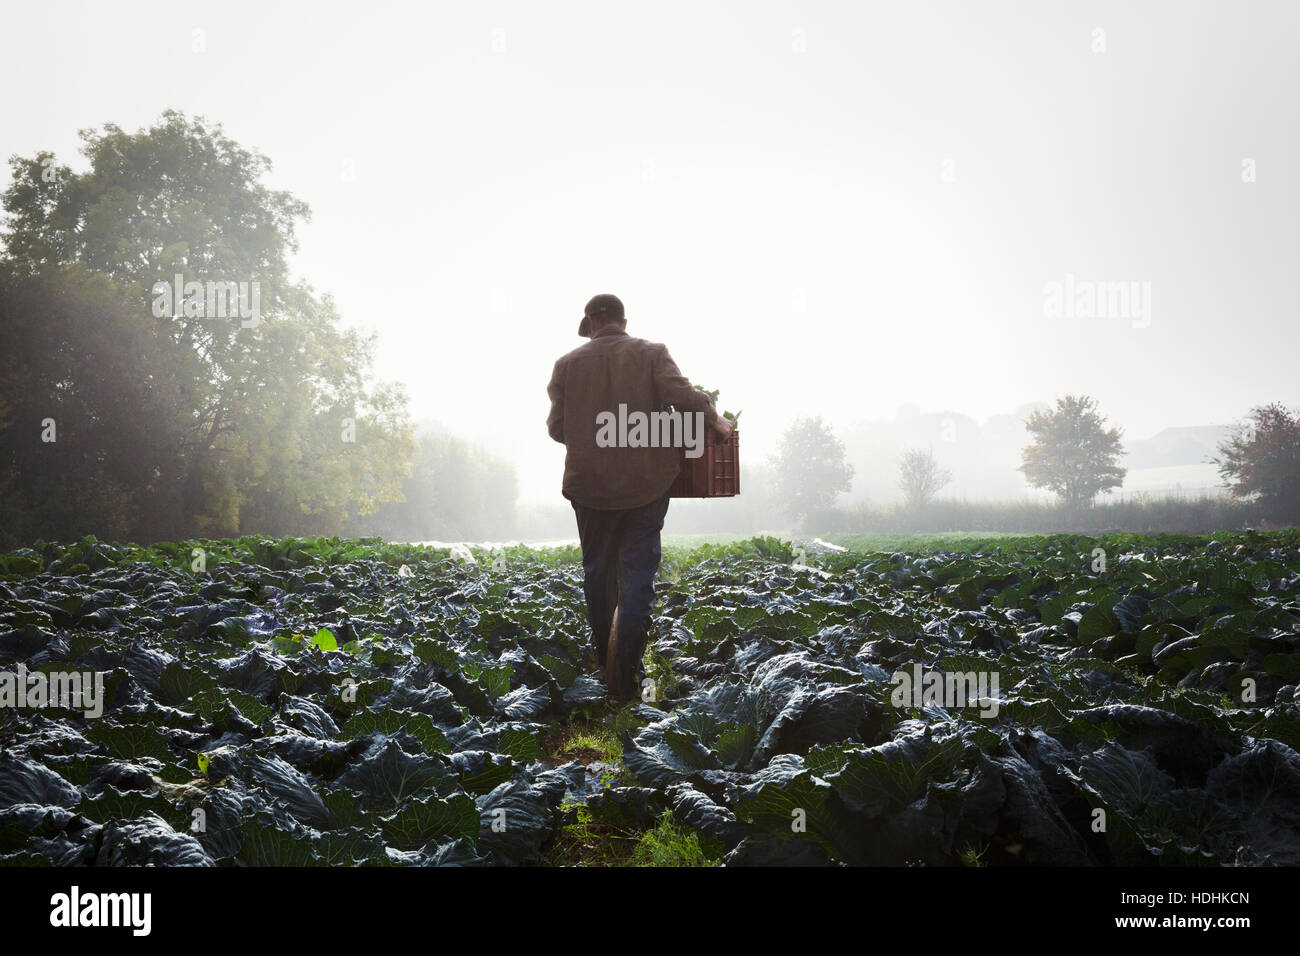 One person walking through rows of vegetables in a field, mist rising over the fields. - Stock Image